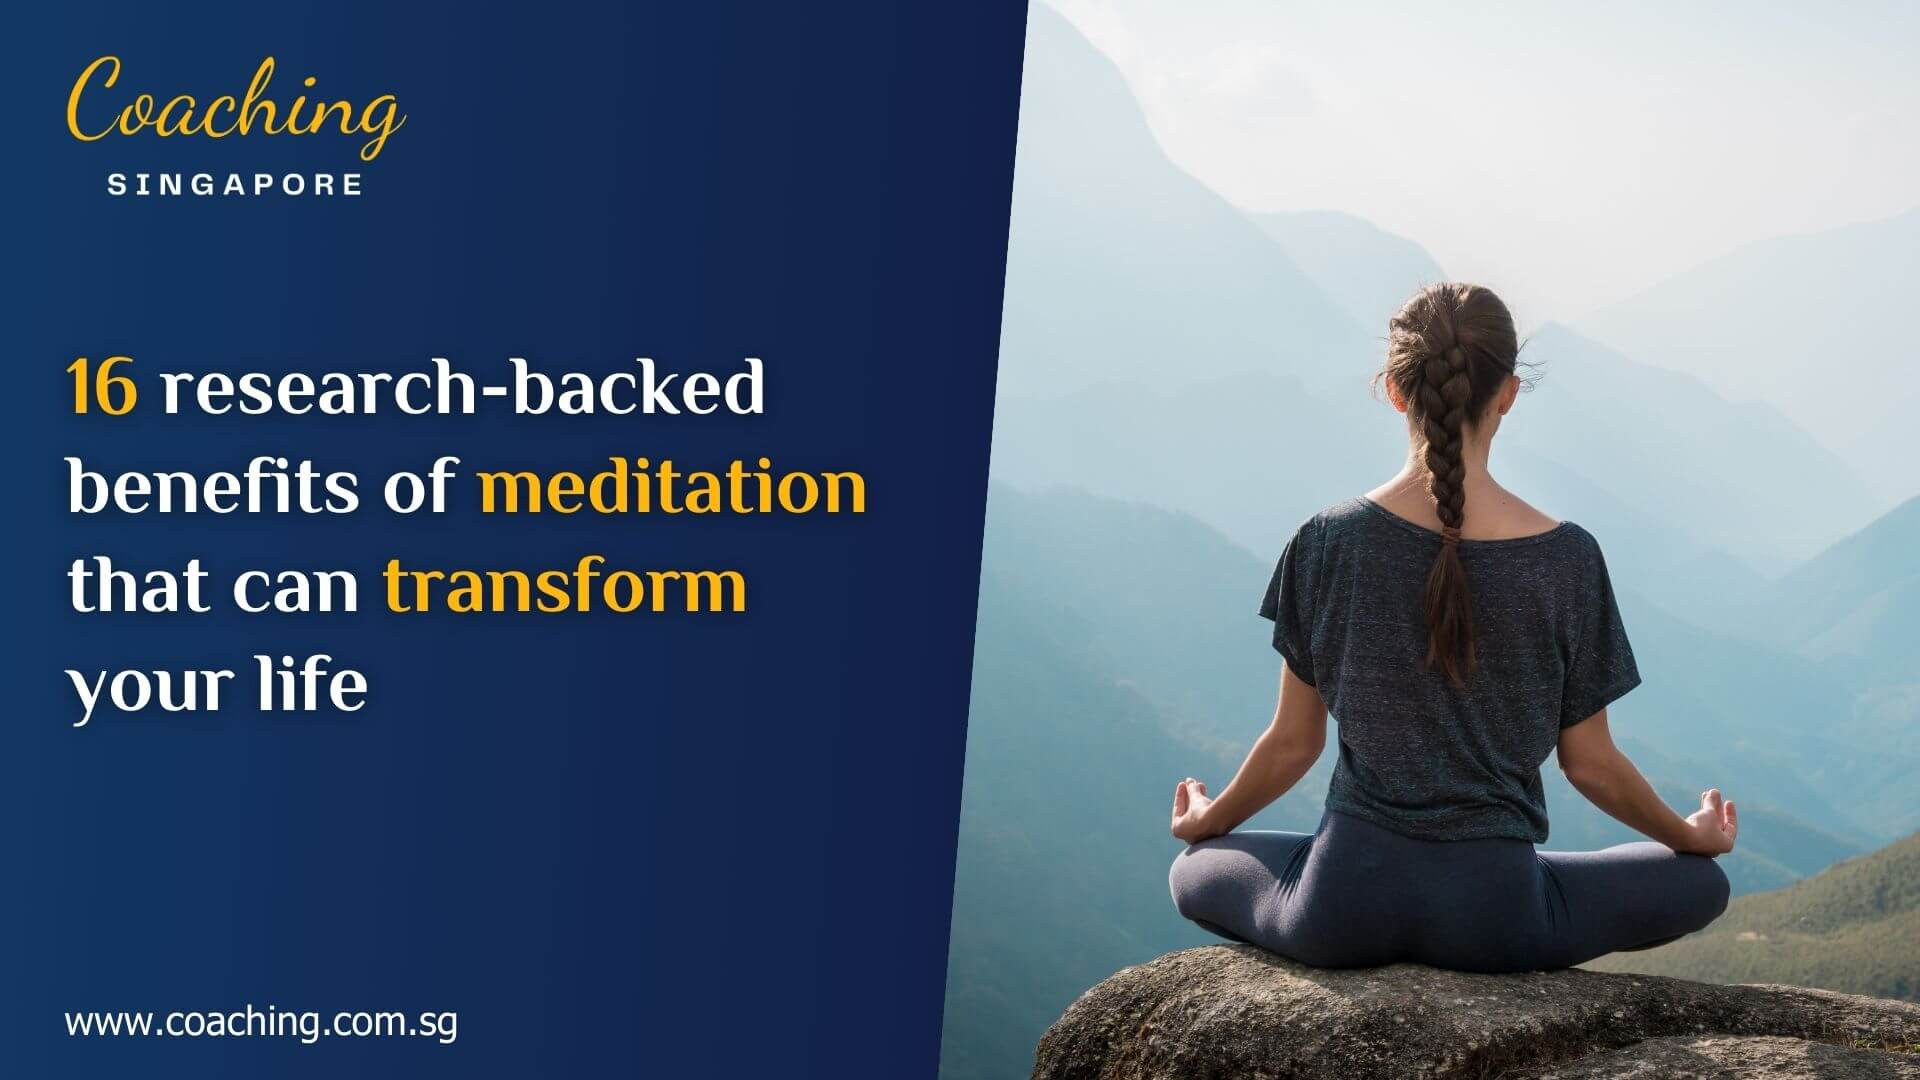 Why should one meditate?